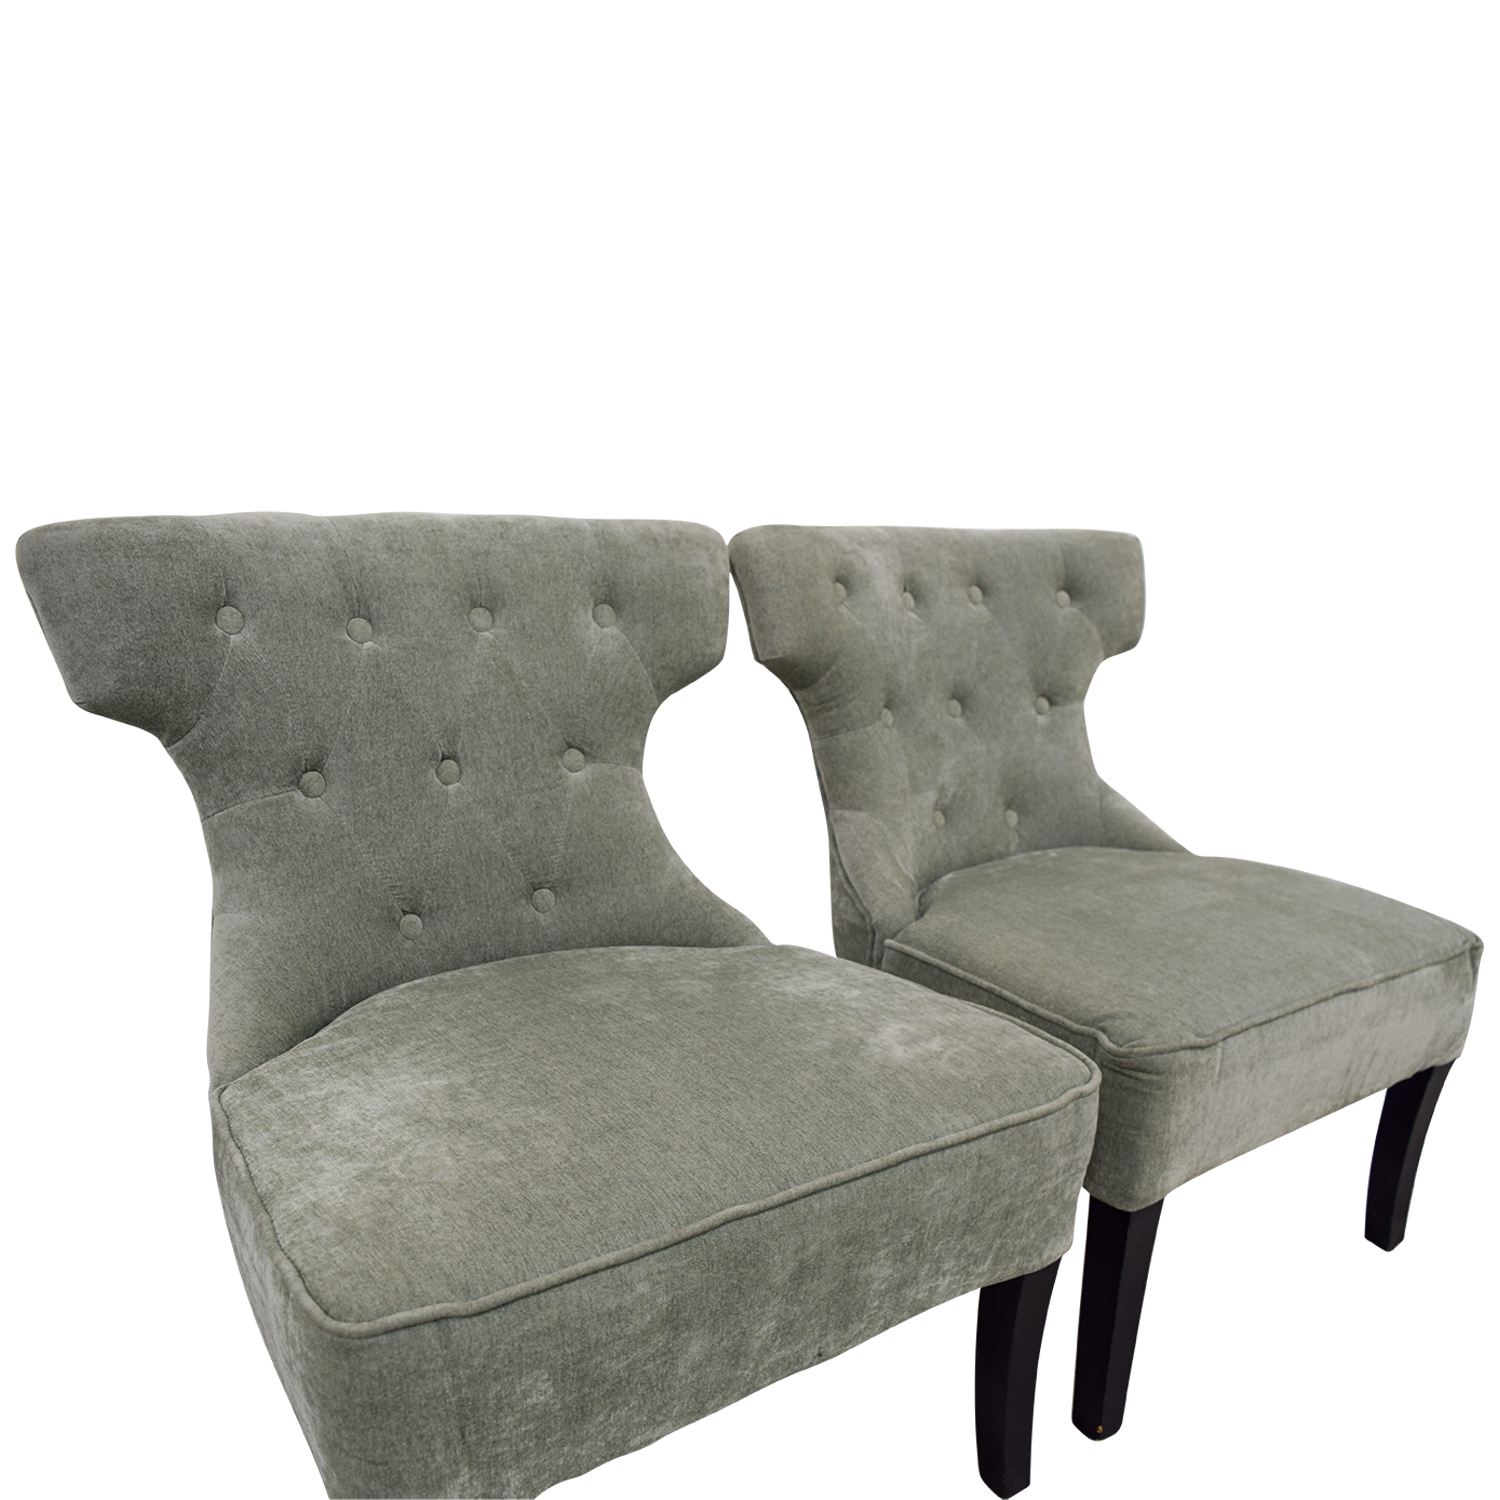 Modern Accent Chairs 79 Off All Modern All Modern Ritz Teal Tufted Accent